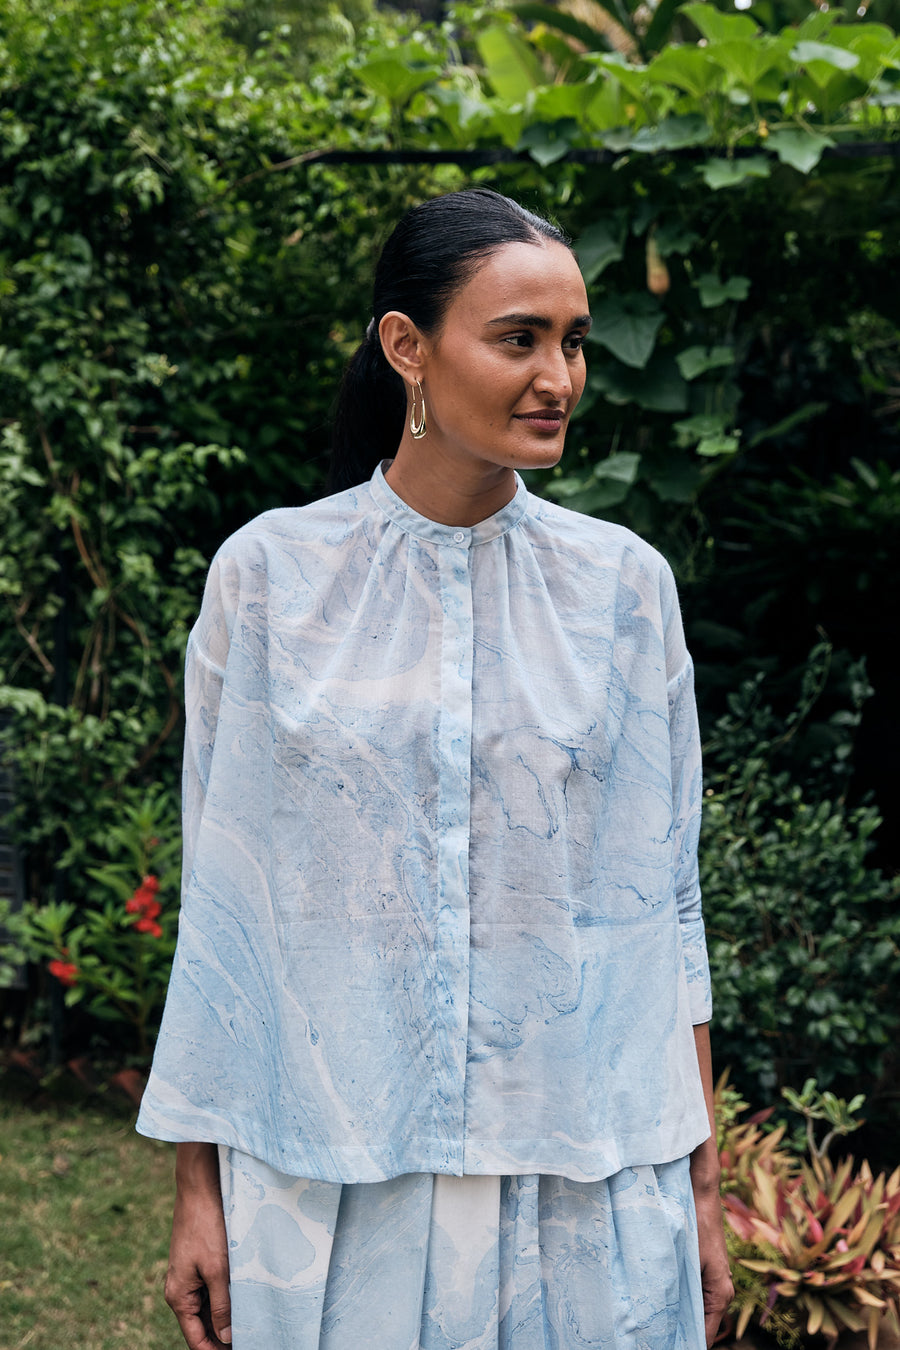 Mohar Cotton Mul Top - Ethical made fashion - onlyethikal